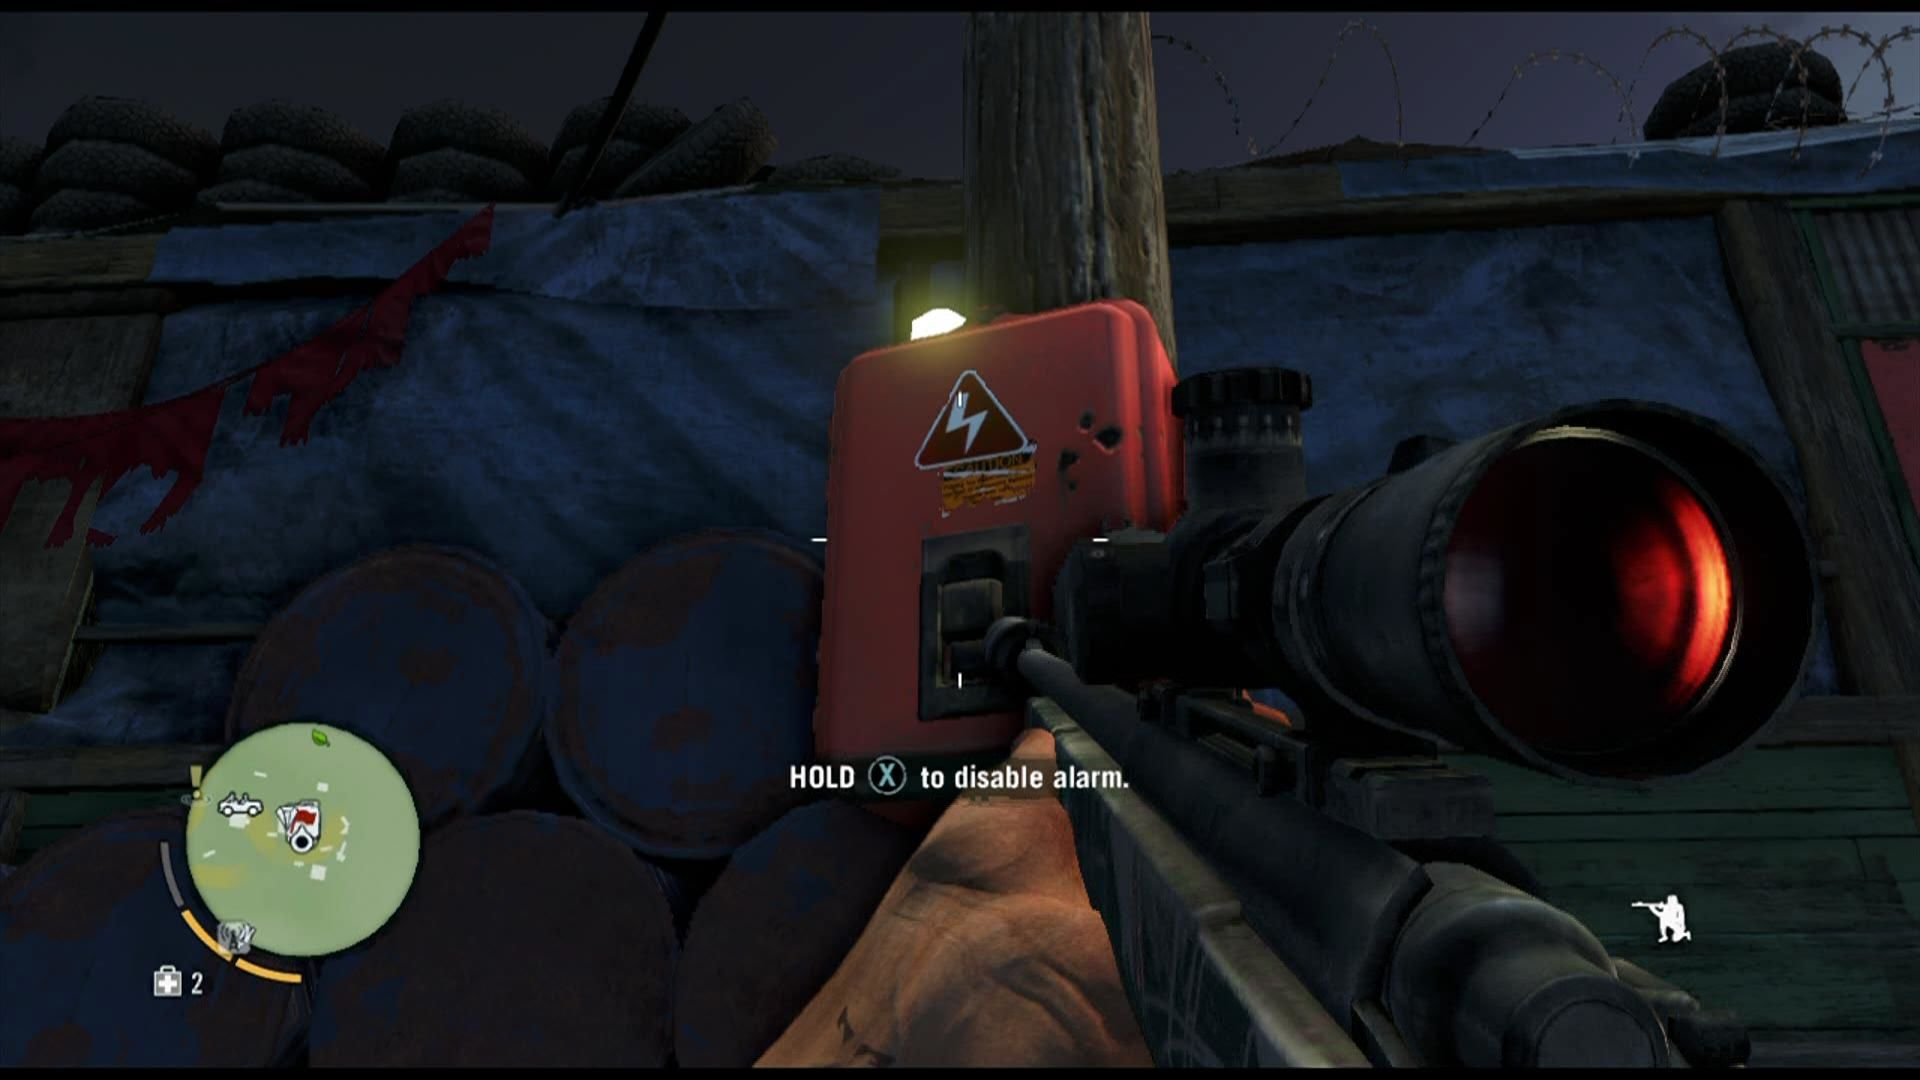 Far Cry 3 Xbox 360 Checkpoints usually have an alarm system, which can be disabled here